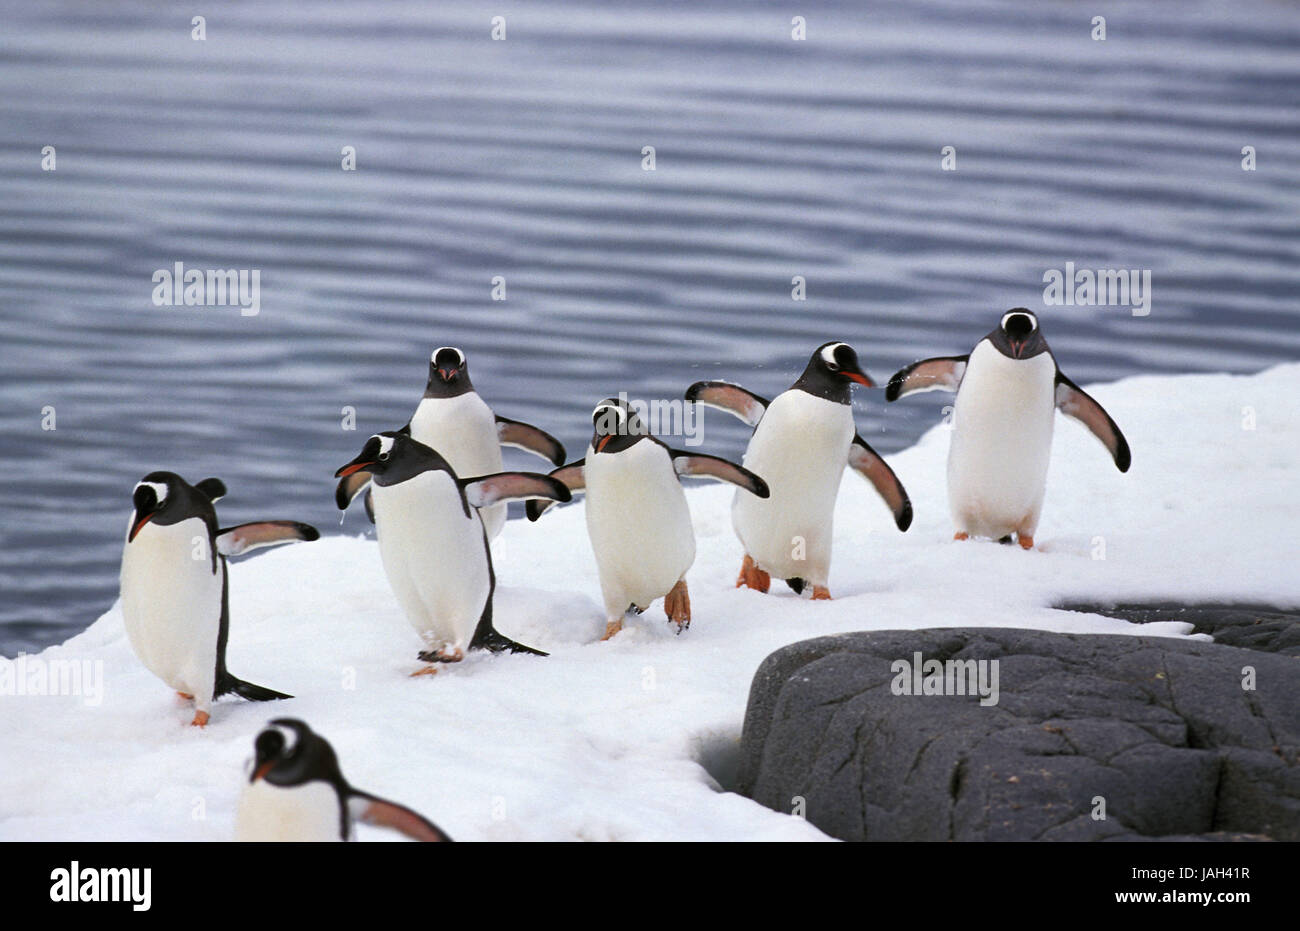 Donkey penguin,Pygoscelis Papua,group,stand,ice cover,Livingstone Island, - Stock Image